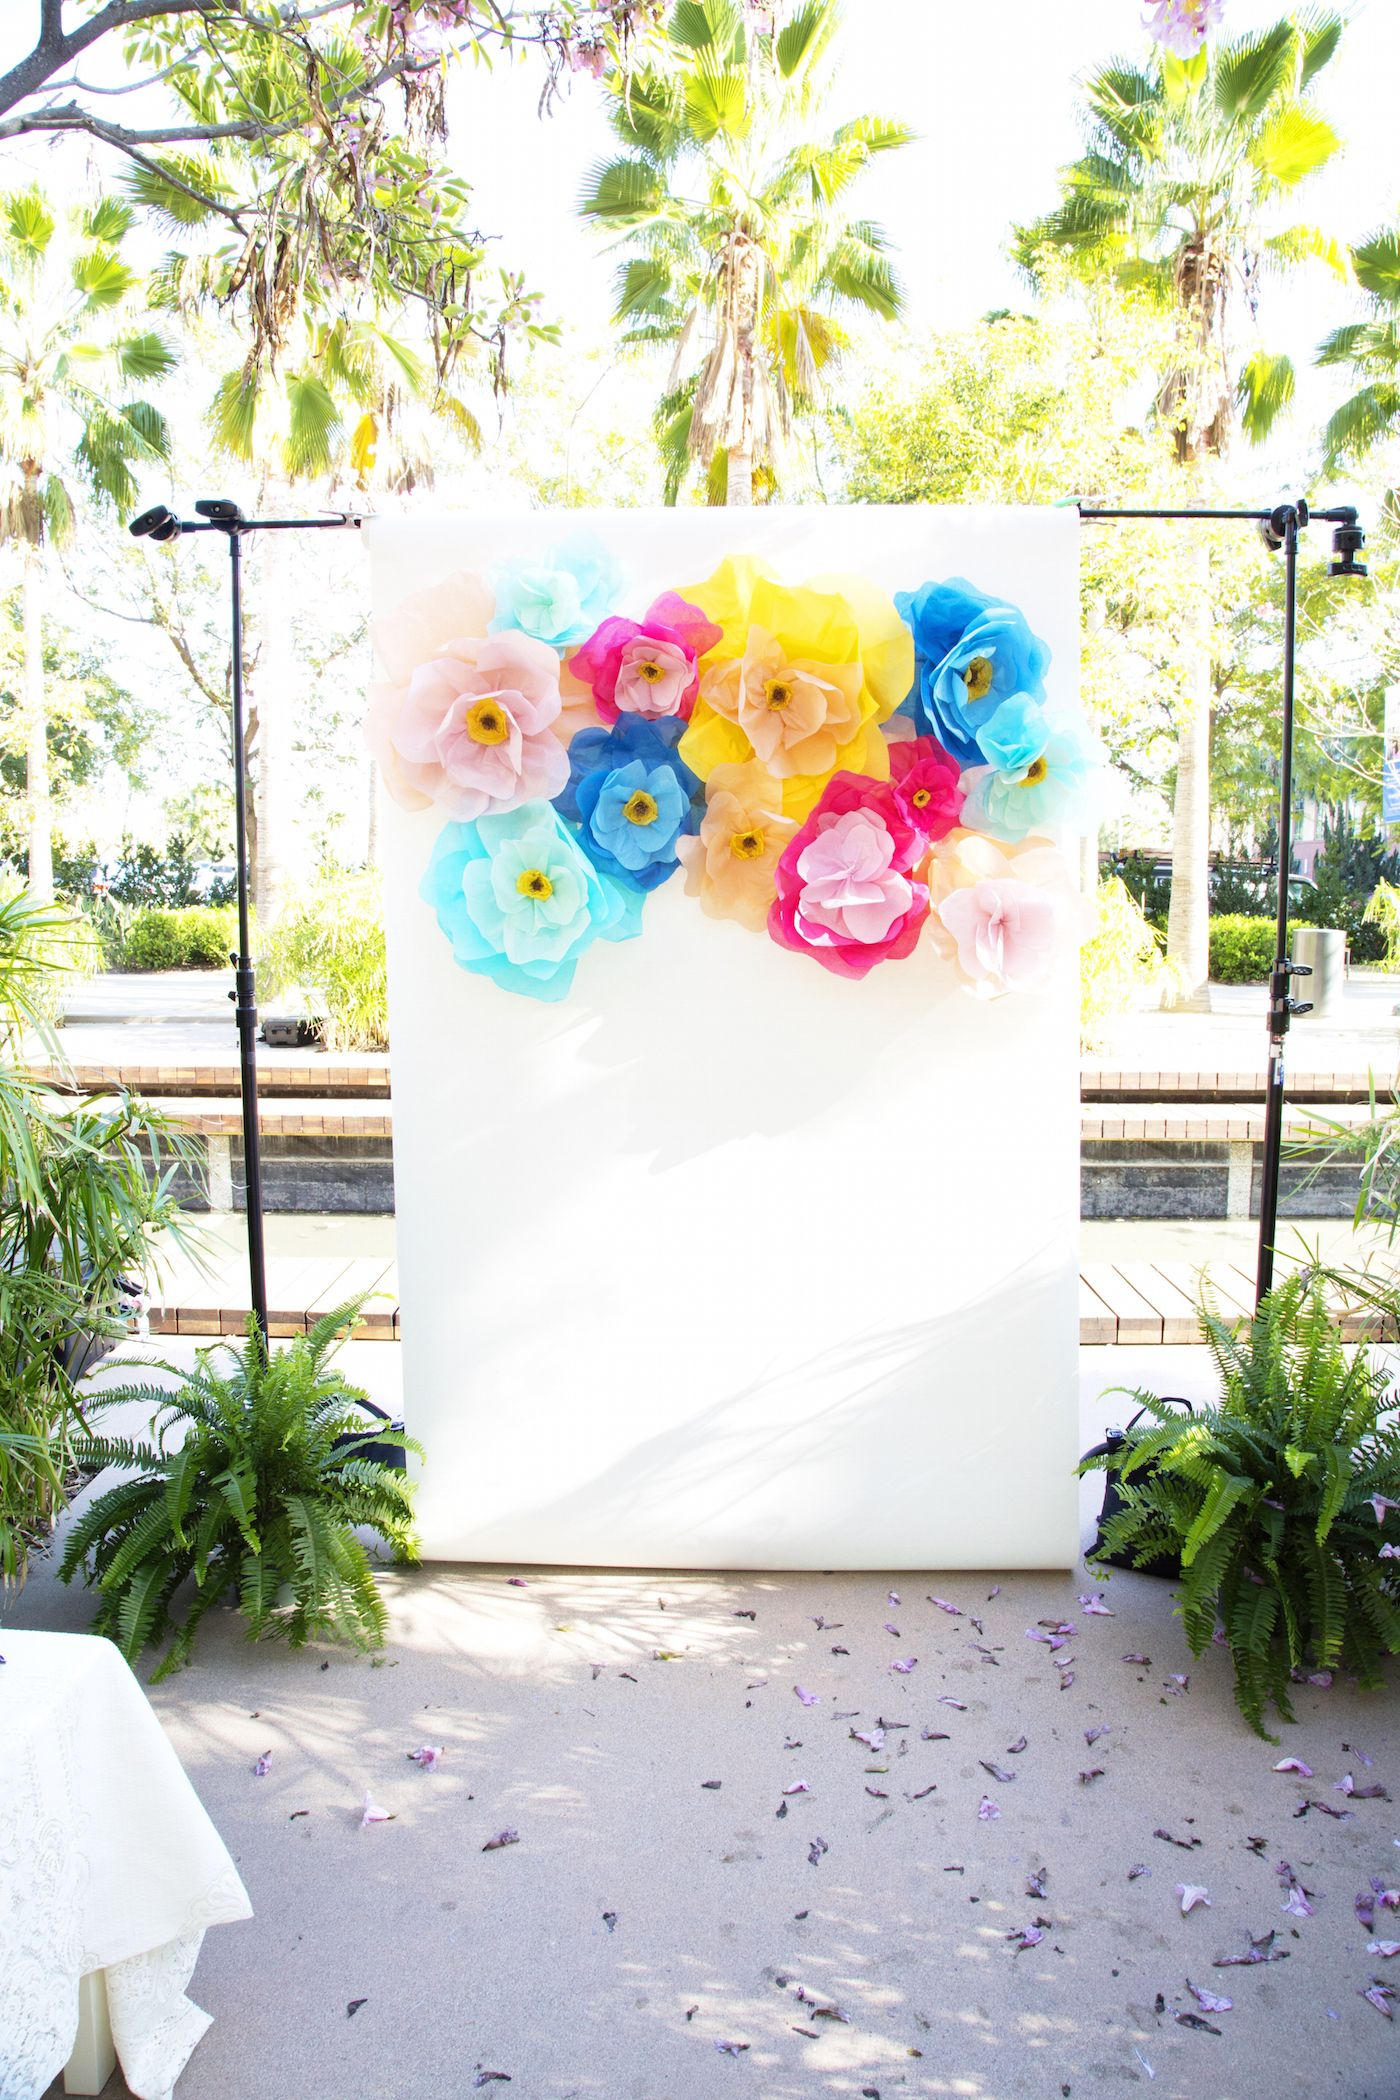 Be Our Guest: Disneyland-themed bridal shower | New Orleans wedding shower inspiration | DIY floral photo booth backdrop | [ https://style.disney.com/living/2016/05/22/be-our-guest-disneyland-themed-bridal-shower/ ]